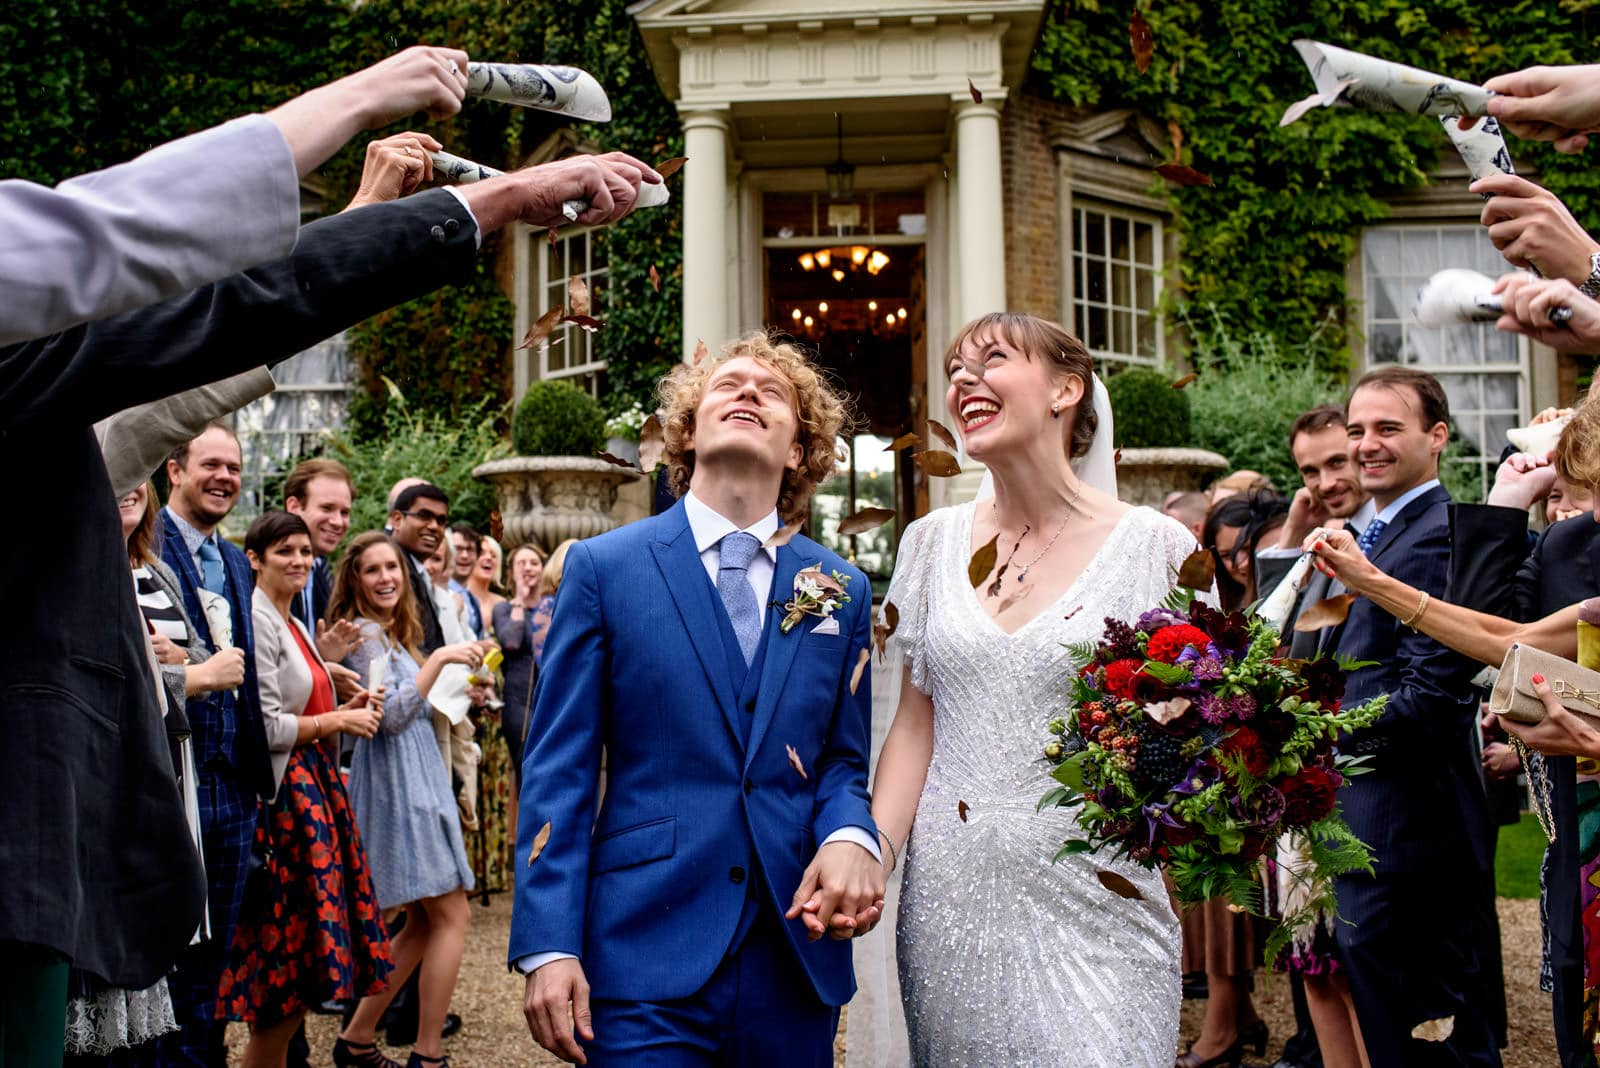 Confetti photo with bride and groom in blue suit at Hampton Court